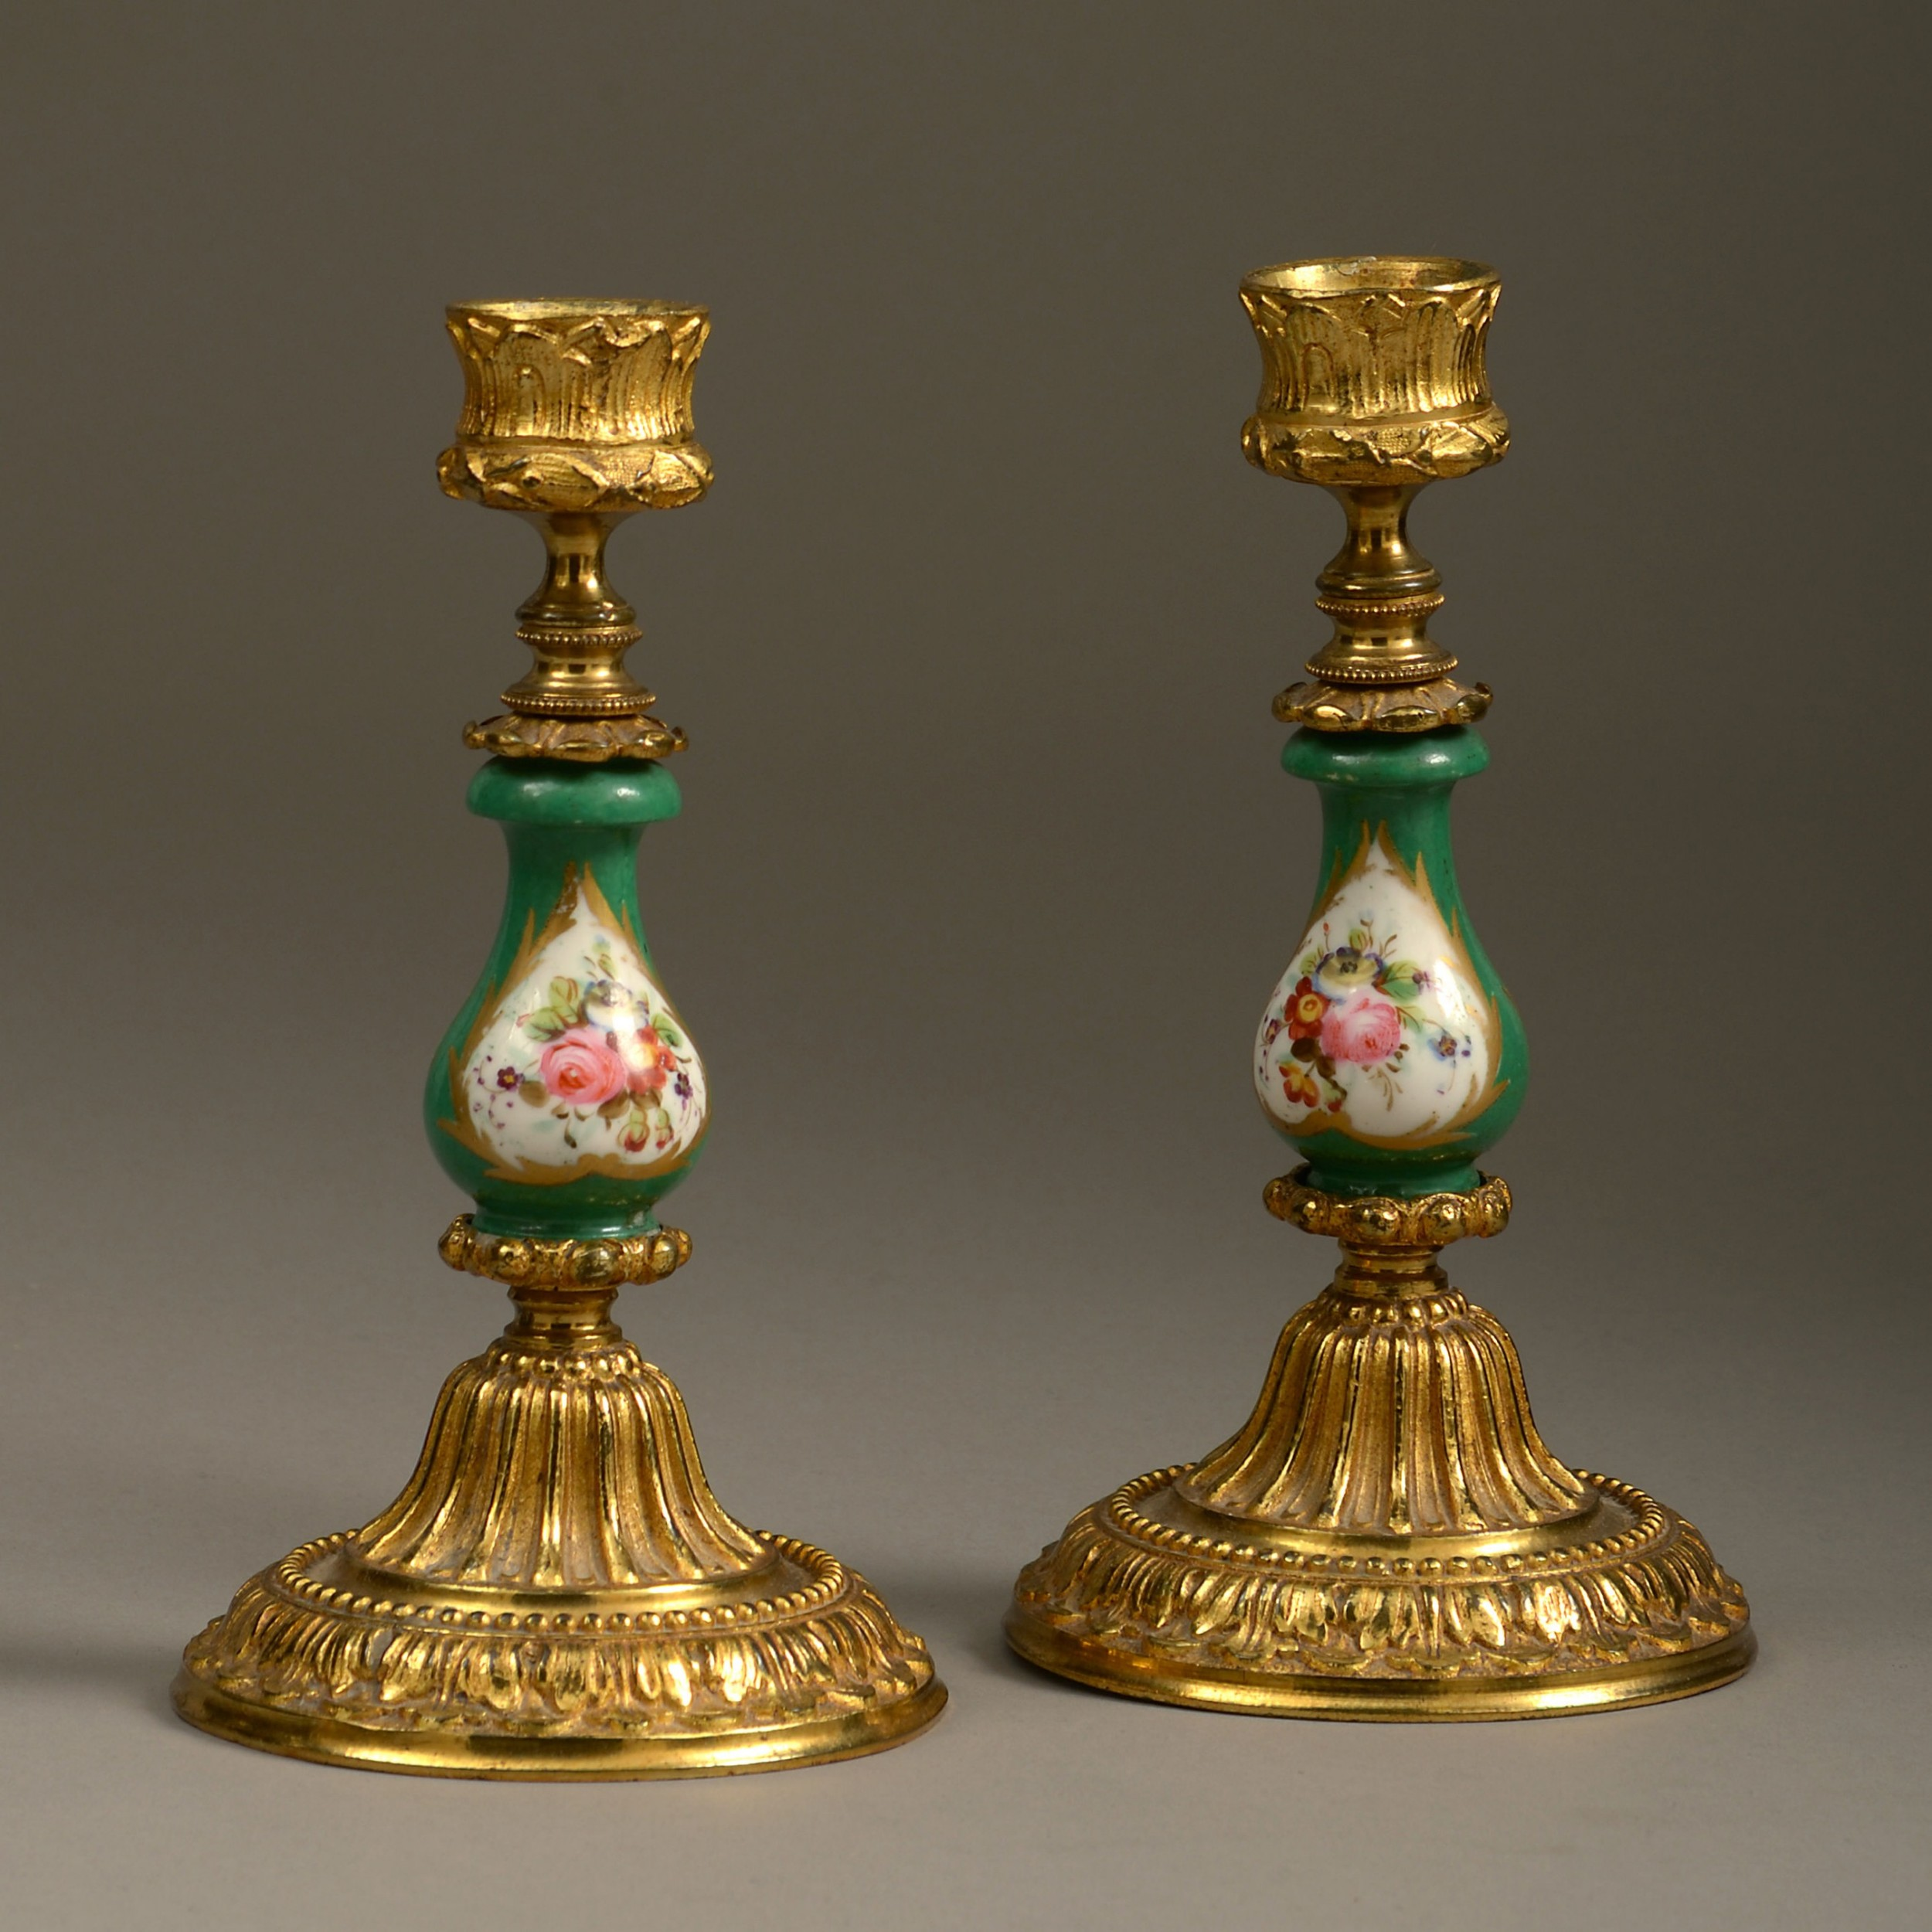 a 19th century pair of sevres and ormolu candlesticks